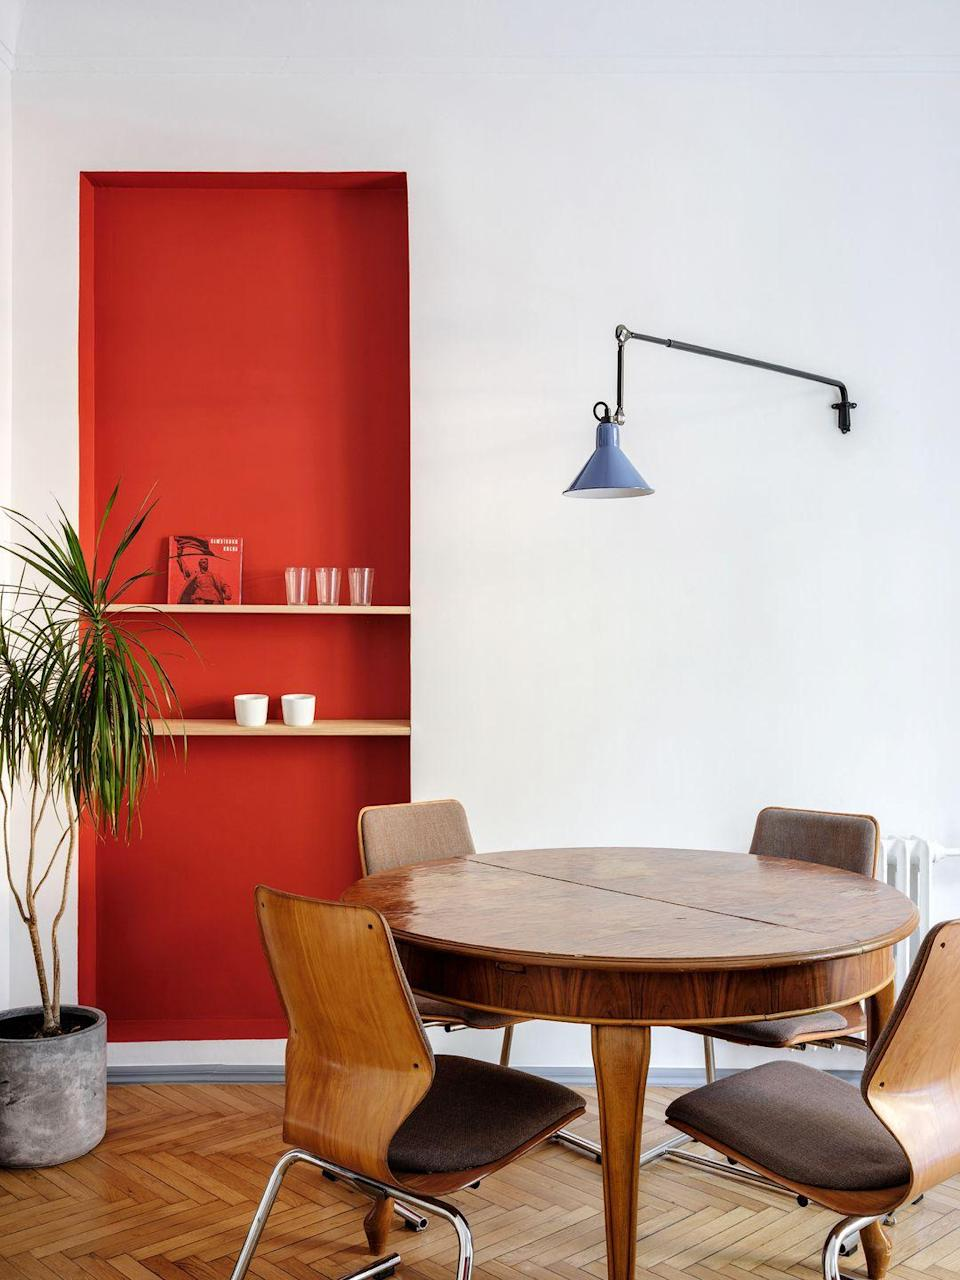 <p>Whether your space has a customized niche or you want to reimagine an existing quirk, consider floating shelves your solution. They'll allow you to get some real practical use of an otherwise unused divot. Here, Emil Dervish made this space pop even more by giving the floating shelves a bright orange-red backdrop. </p>